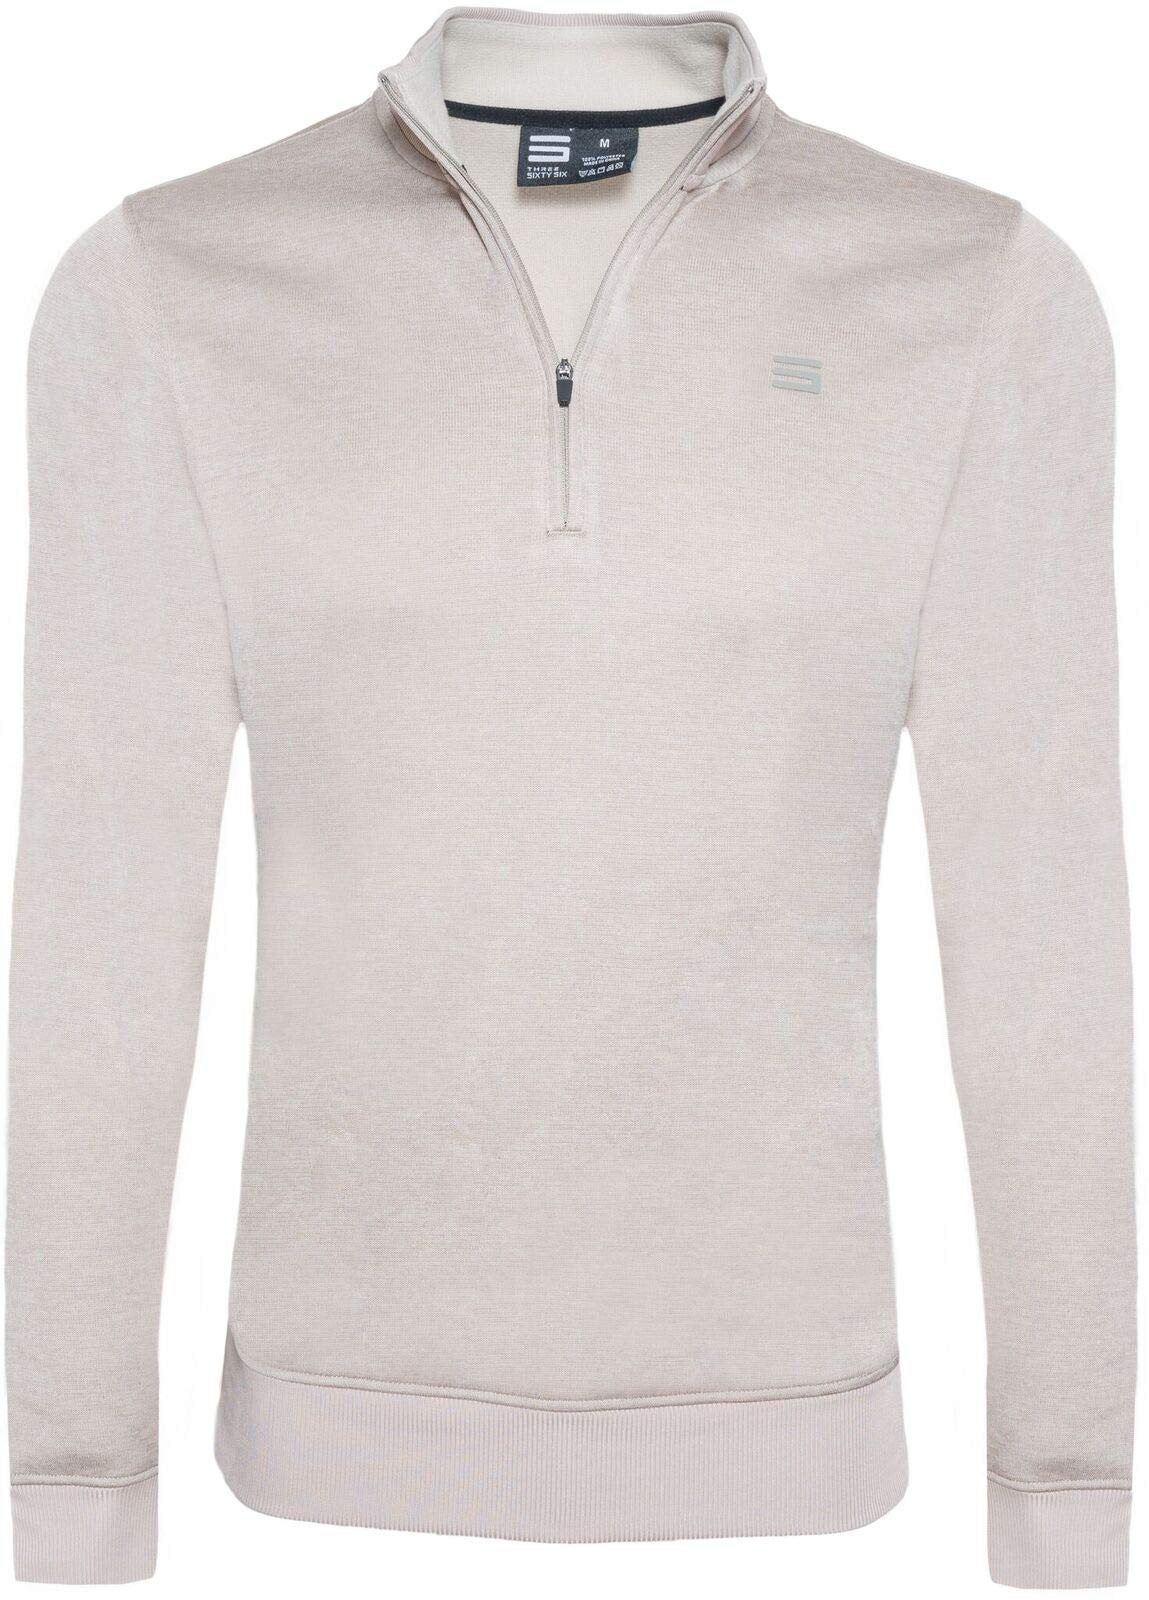 Dry Fit Pullover Sweaters for Men - Quarter Zip Fleece Golf Jacket - Tailored Fit Khaki by Three Sixty Six